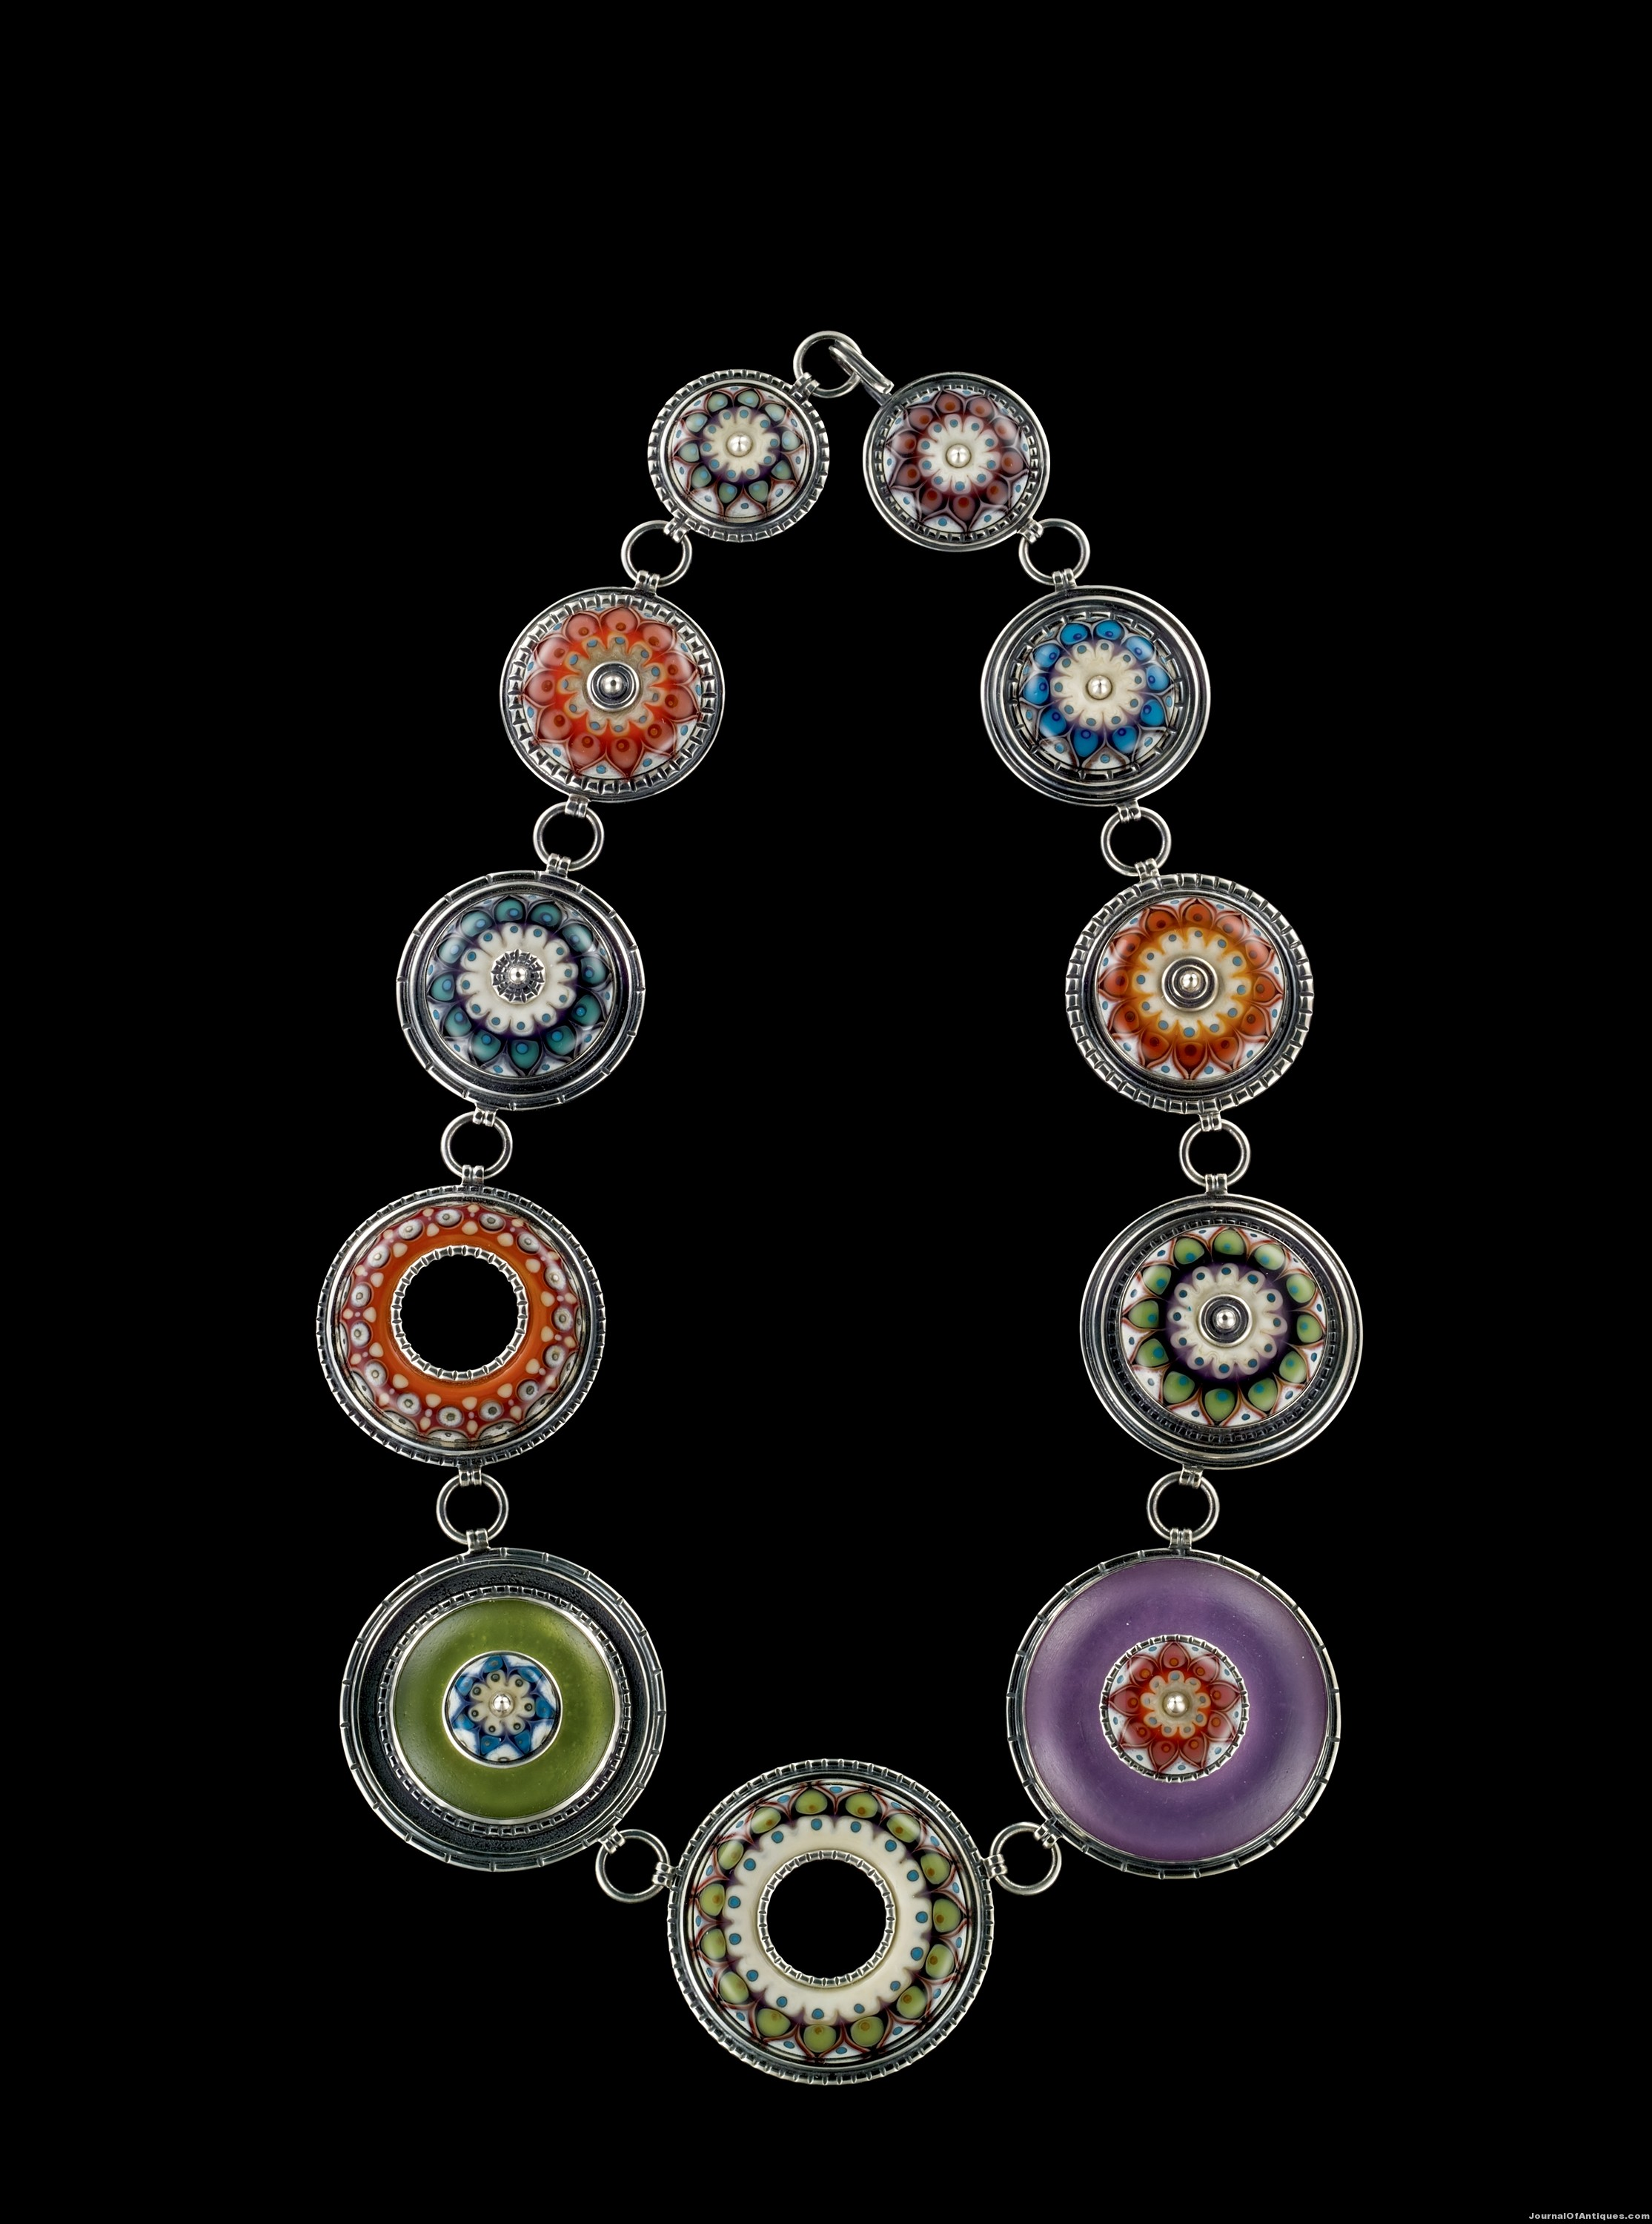 Corning Museum of Glass Features 3,500 Years of Glass Beads